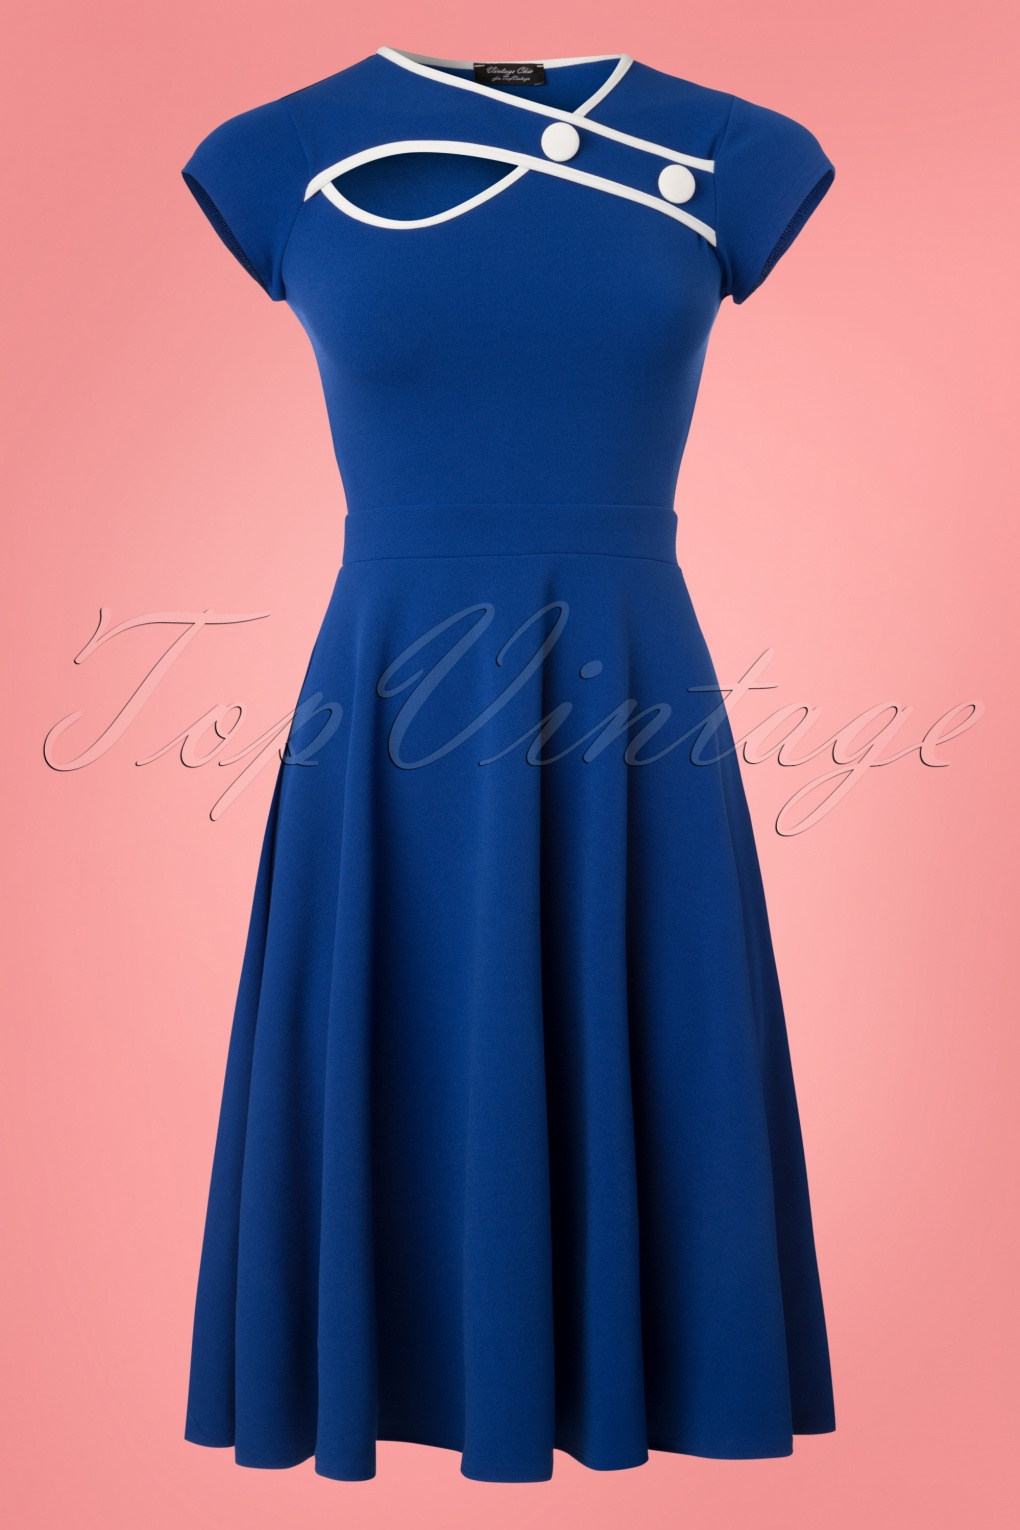 Sailor Dresses, Nautical Dress, Pin Up & WW2 Dresses 50s Rita Short Sleeve Swing Dress in Royal Blue £48.68 AT vintagedancer.com